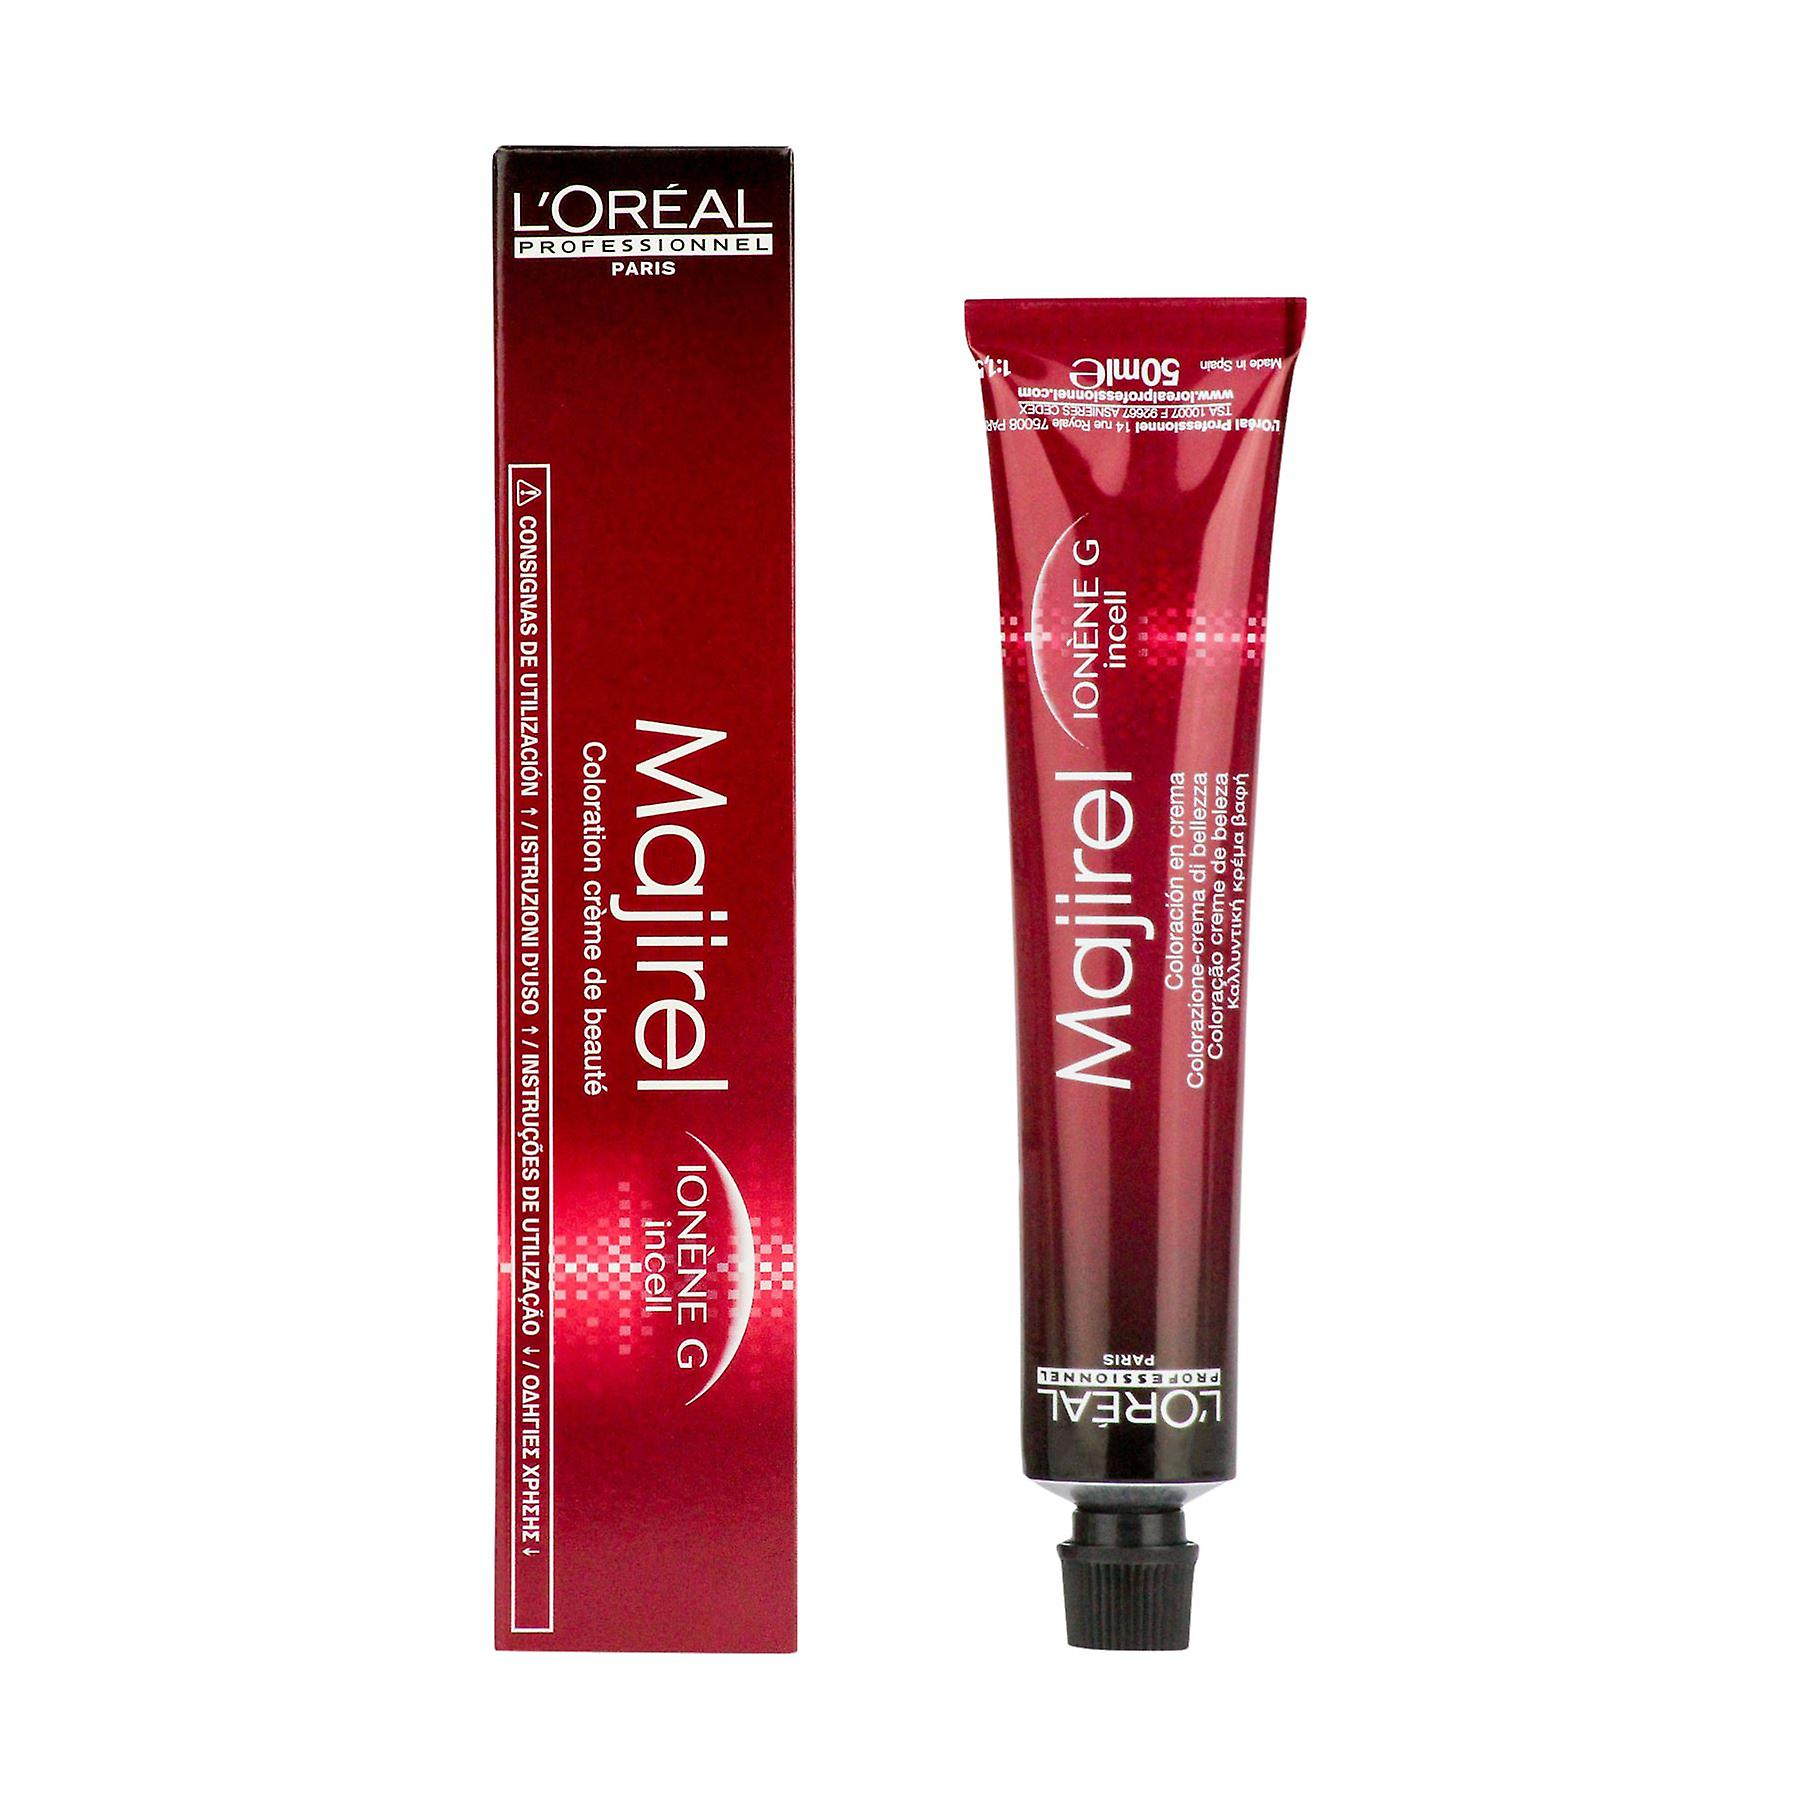 L'Oreal Professionnel Majirel 3 Brown 50ml